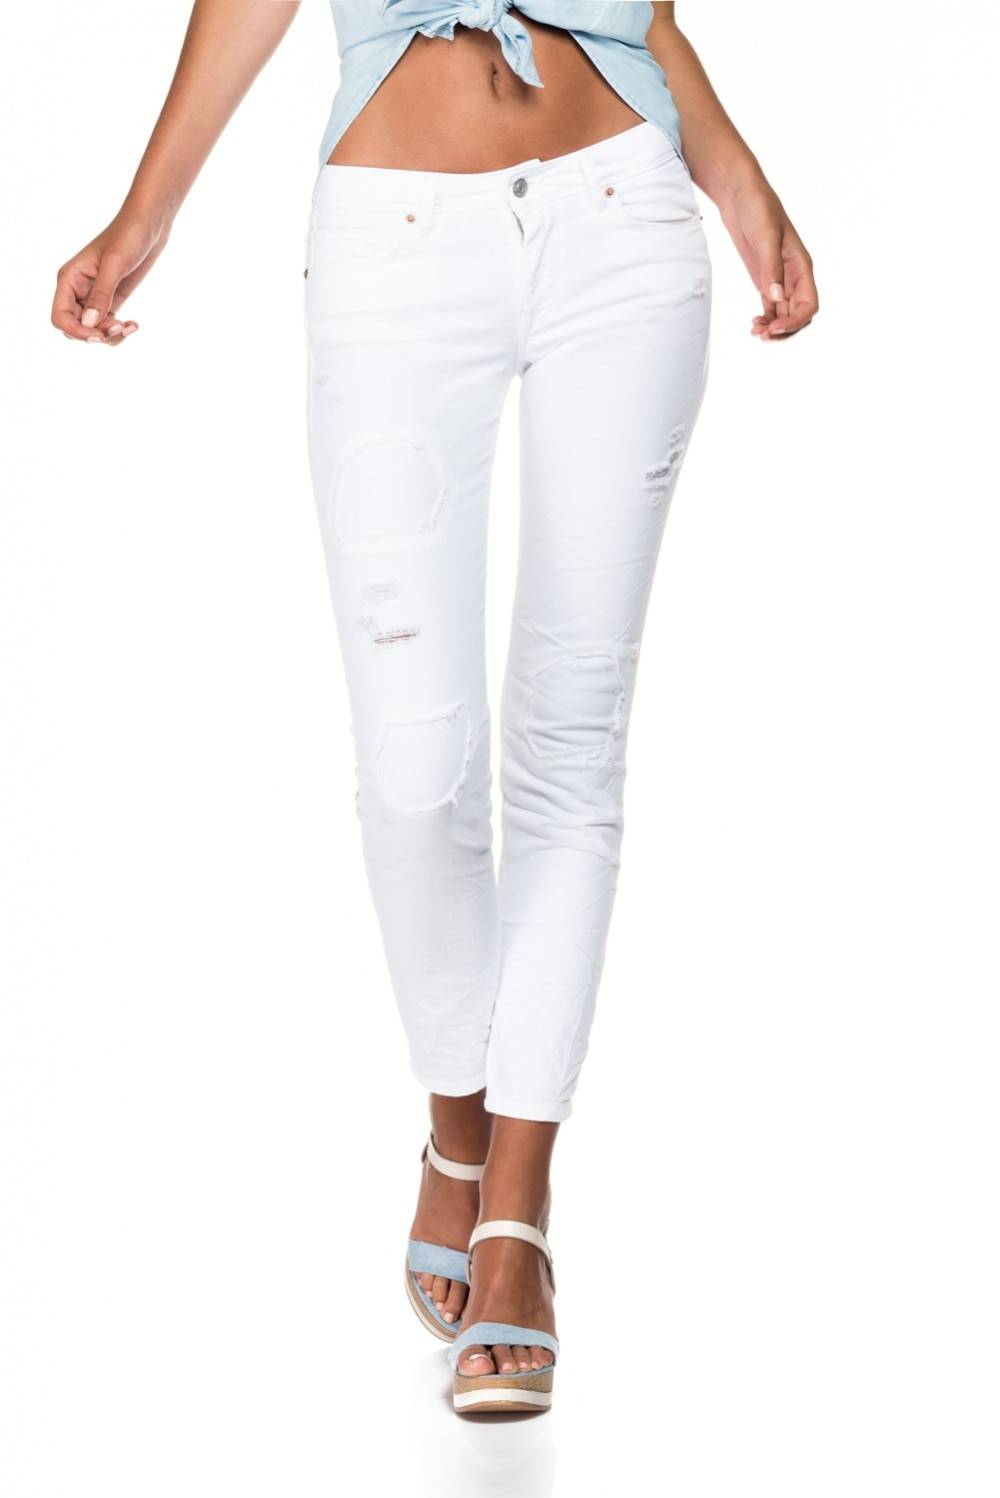 Salsa Pantalón blanco rasgado con remiendos del mismo color - Collete skinny fit